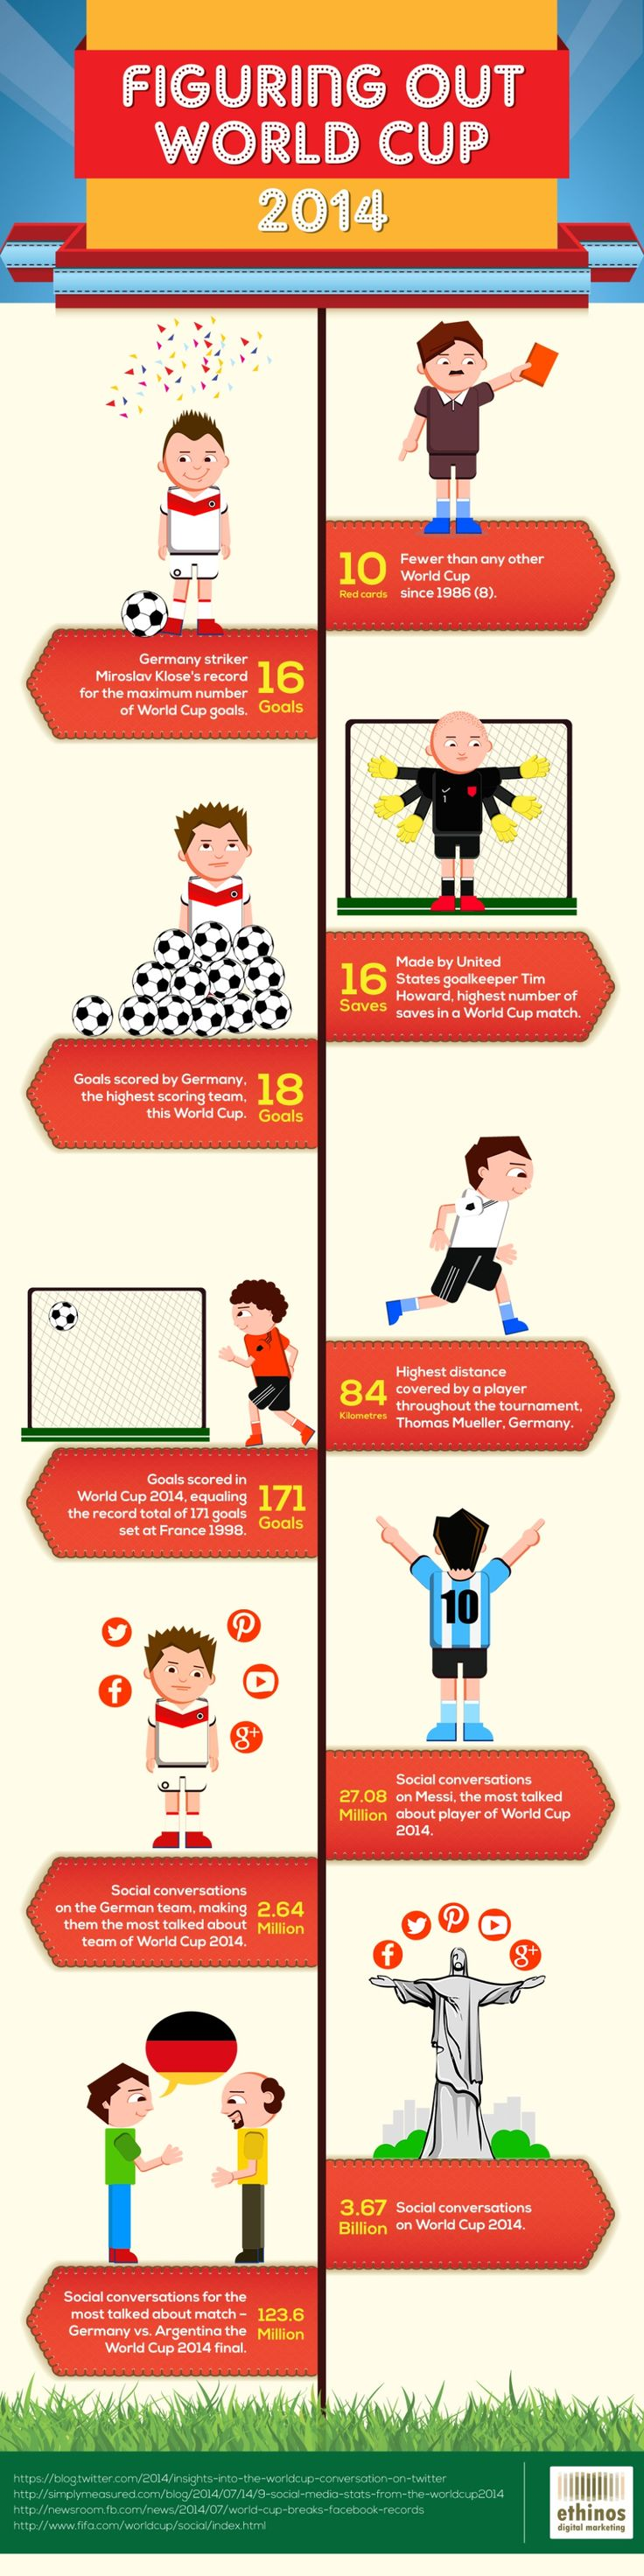 Figuring out World Cup 2014 – An animated Infographic by Ethinos Digital Marketing via slideshare